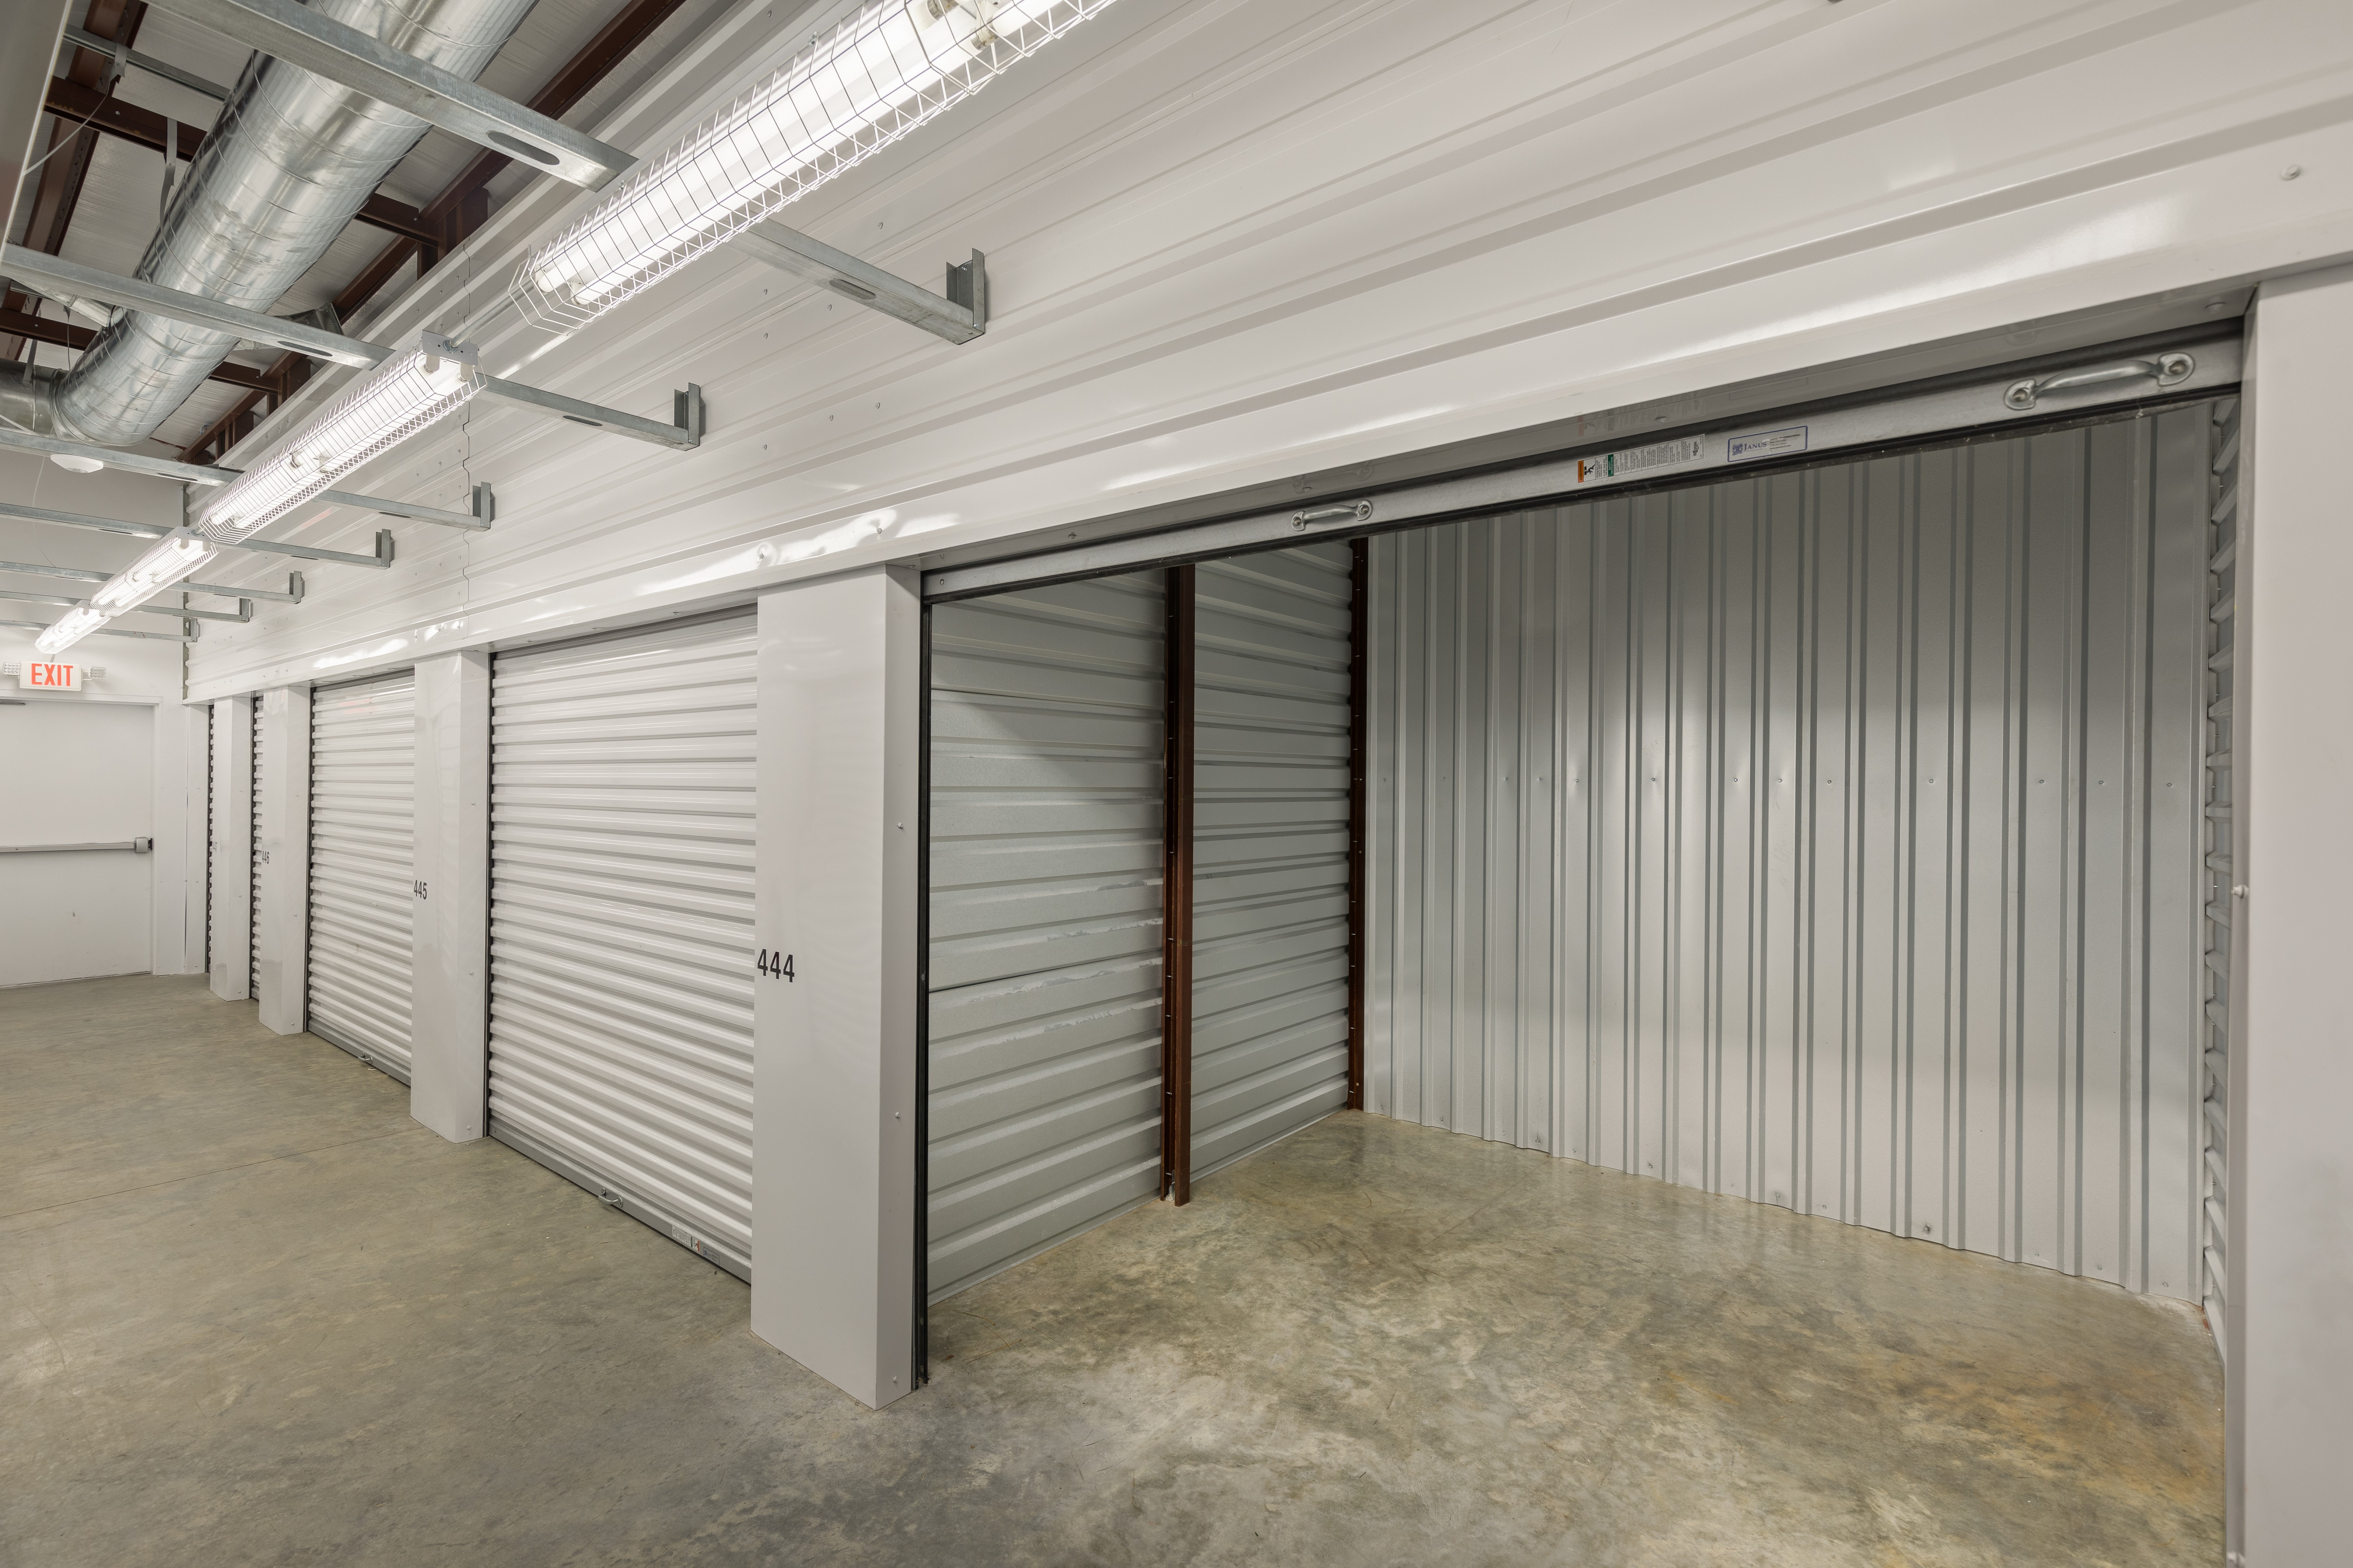 interior storage units, one with roll up door open